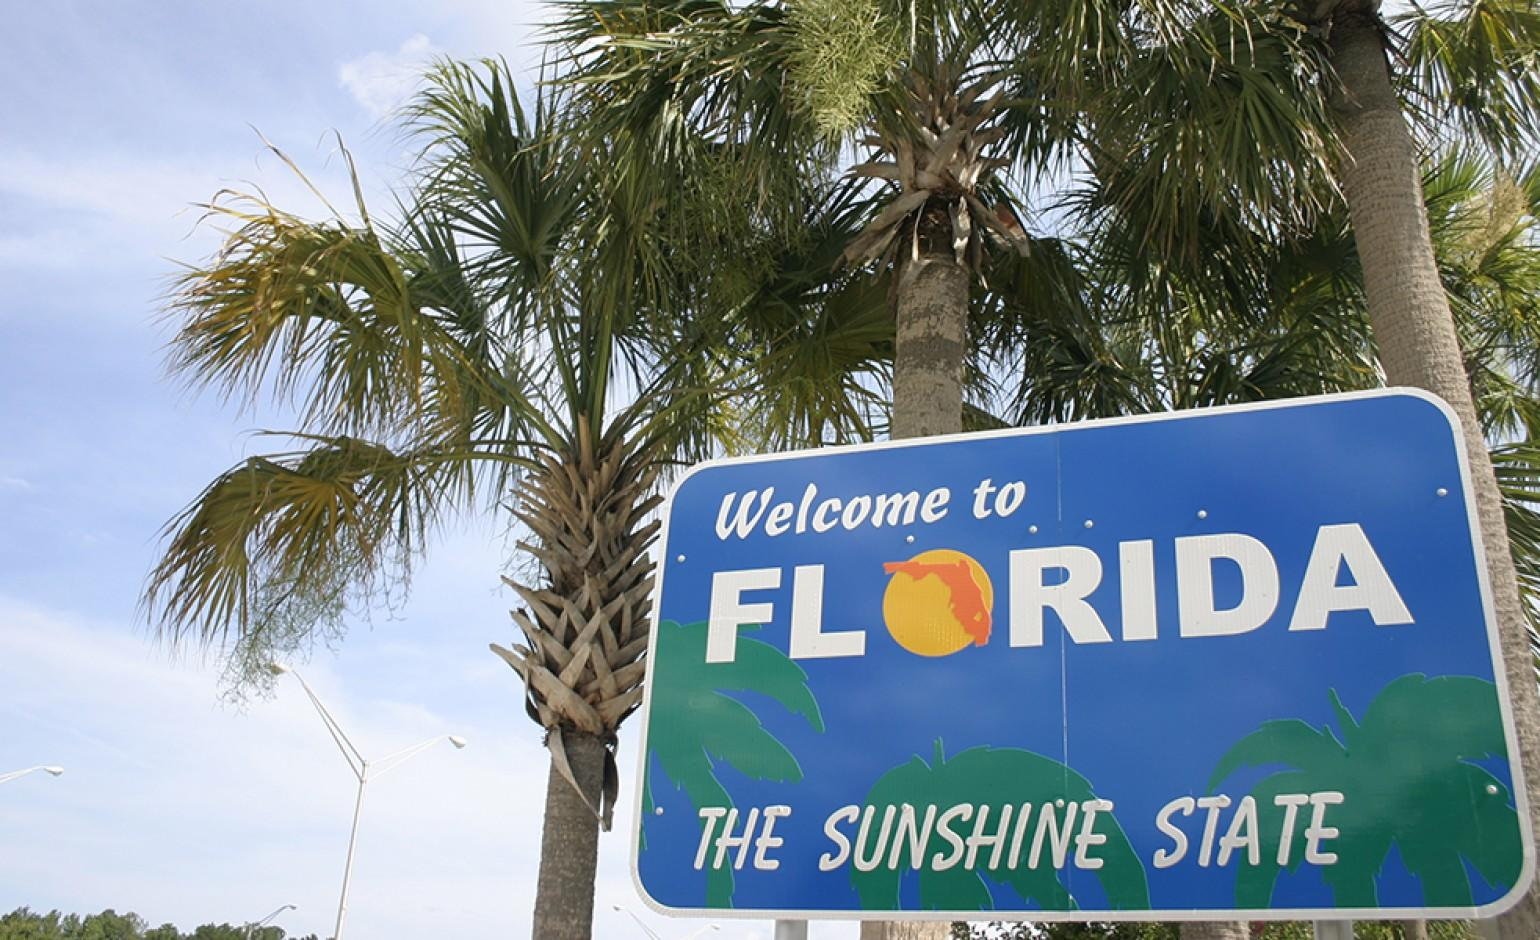 Florida's home prices spike 'well in excess of recent norms,' but could cool soon